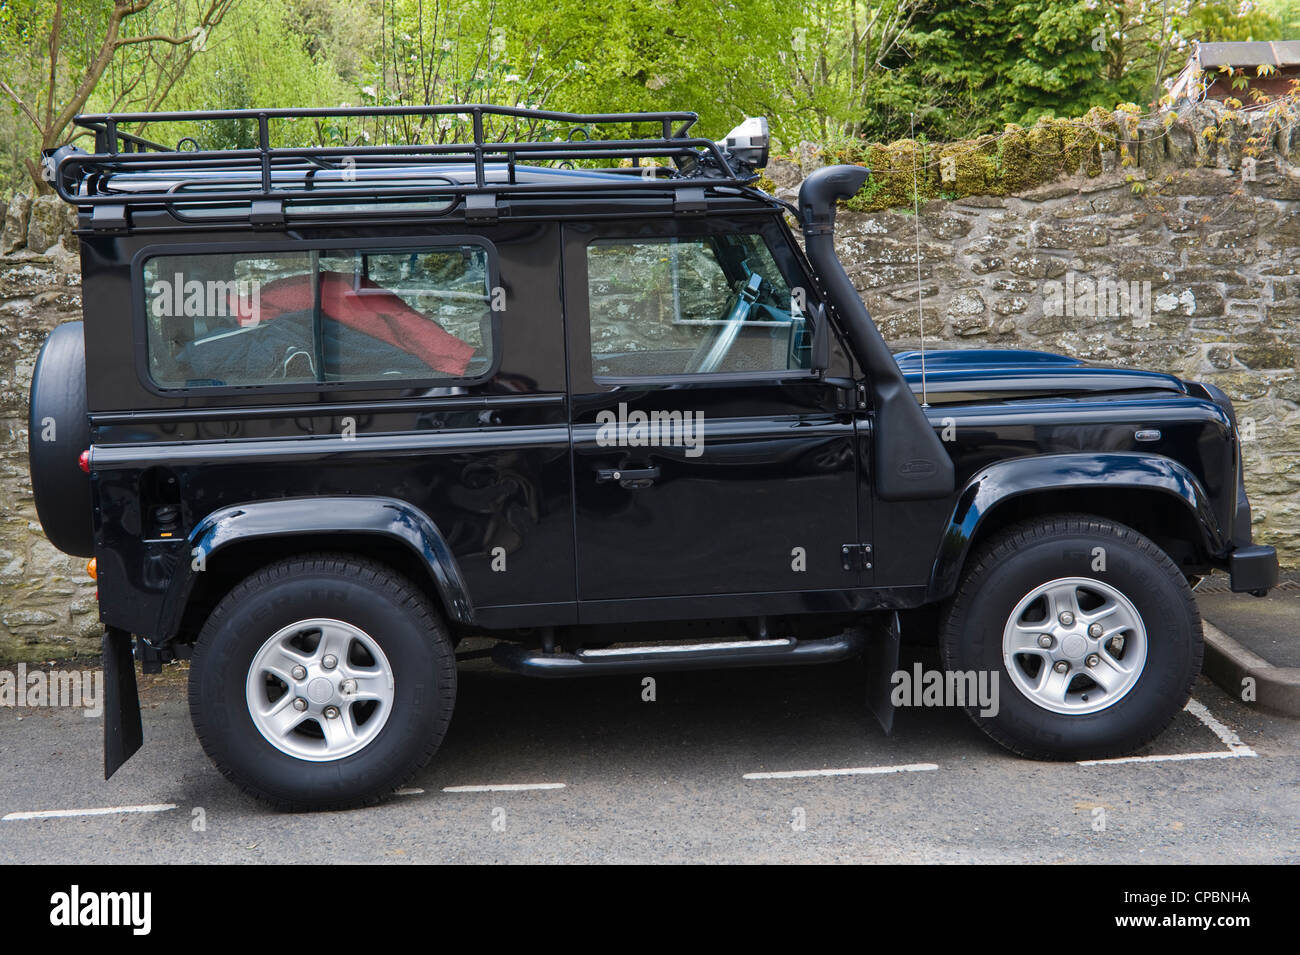 black land rover defender 90 2 4tdci 4x4 with safari snorkel and roof stock photo 48201590 alamy. Black Bedroom Furniture Sets. Home Design Ideas